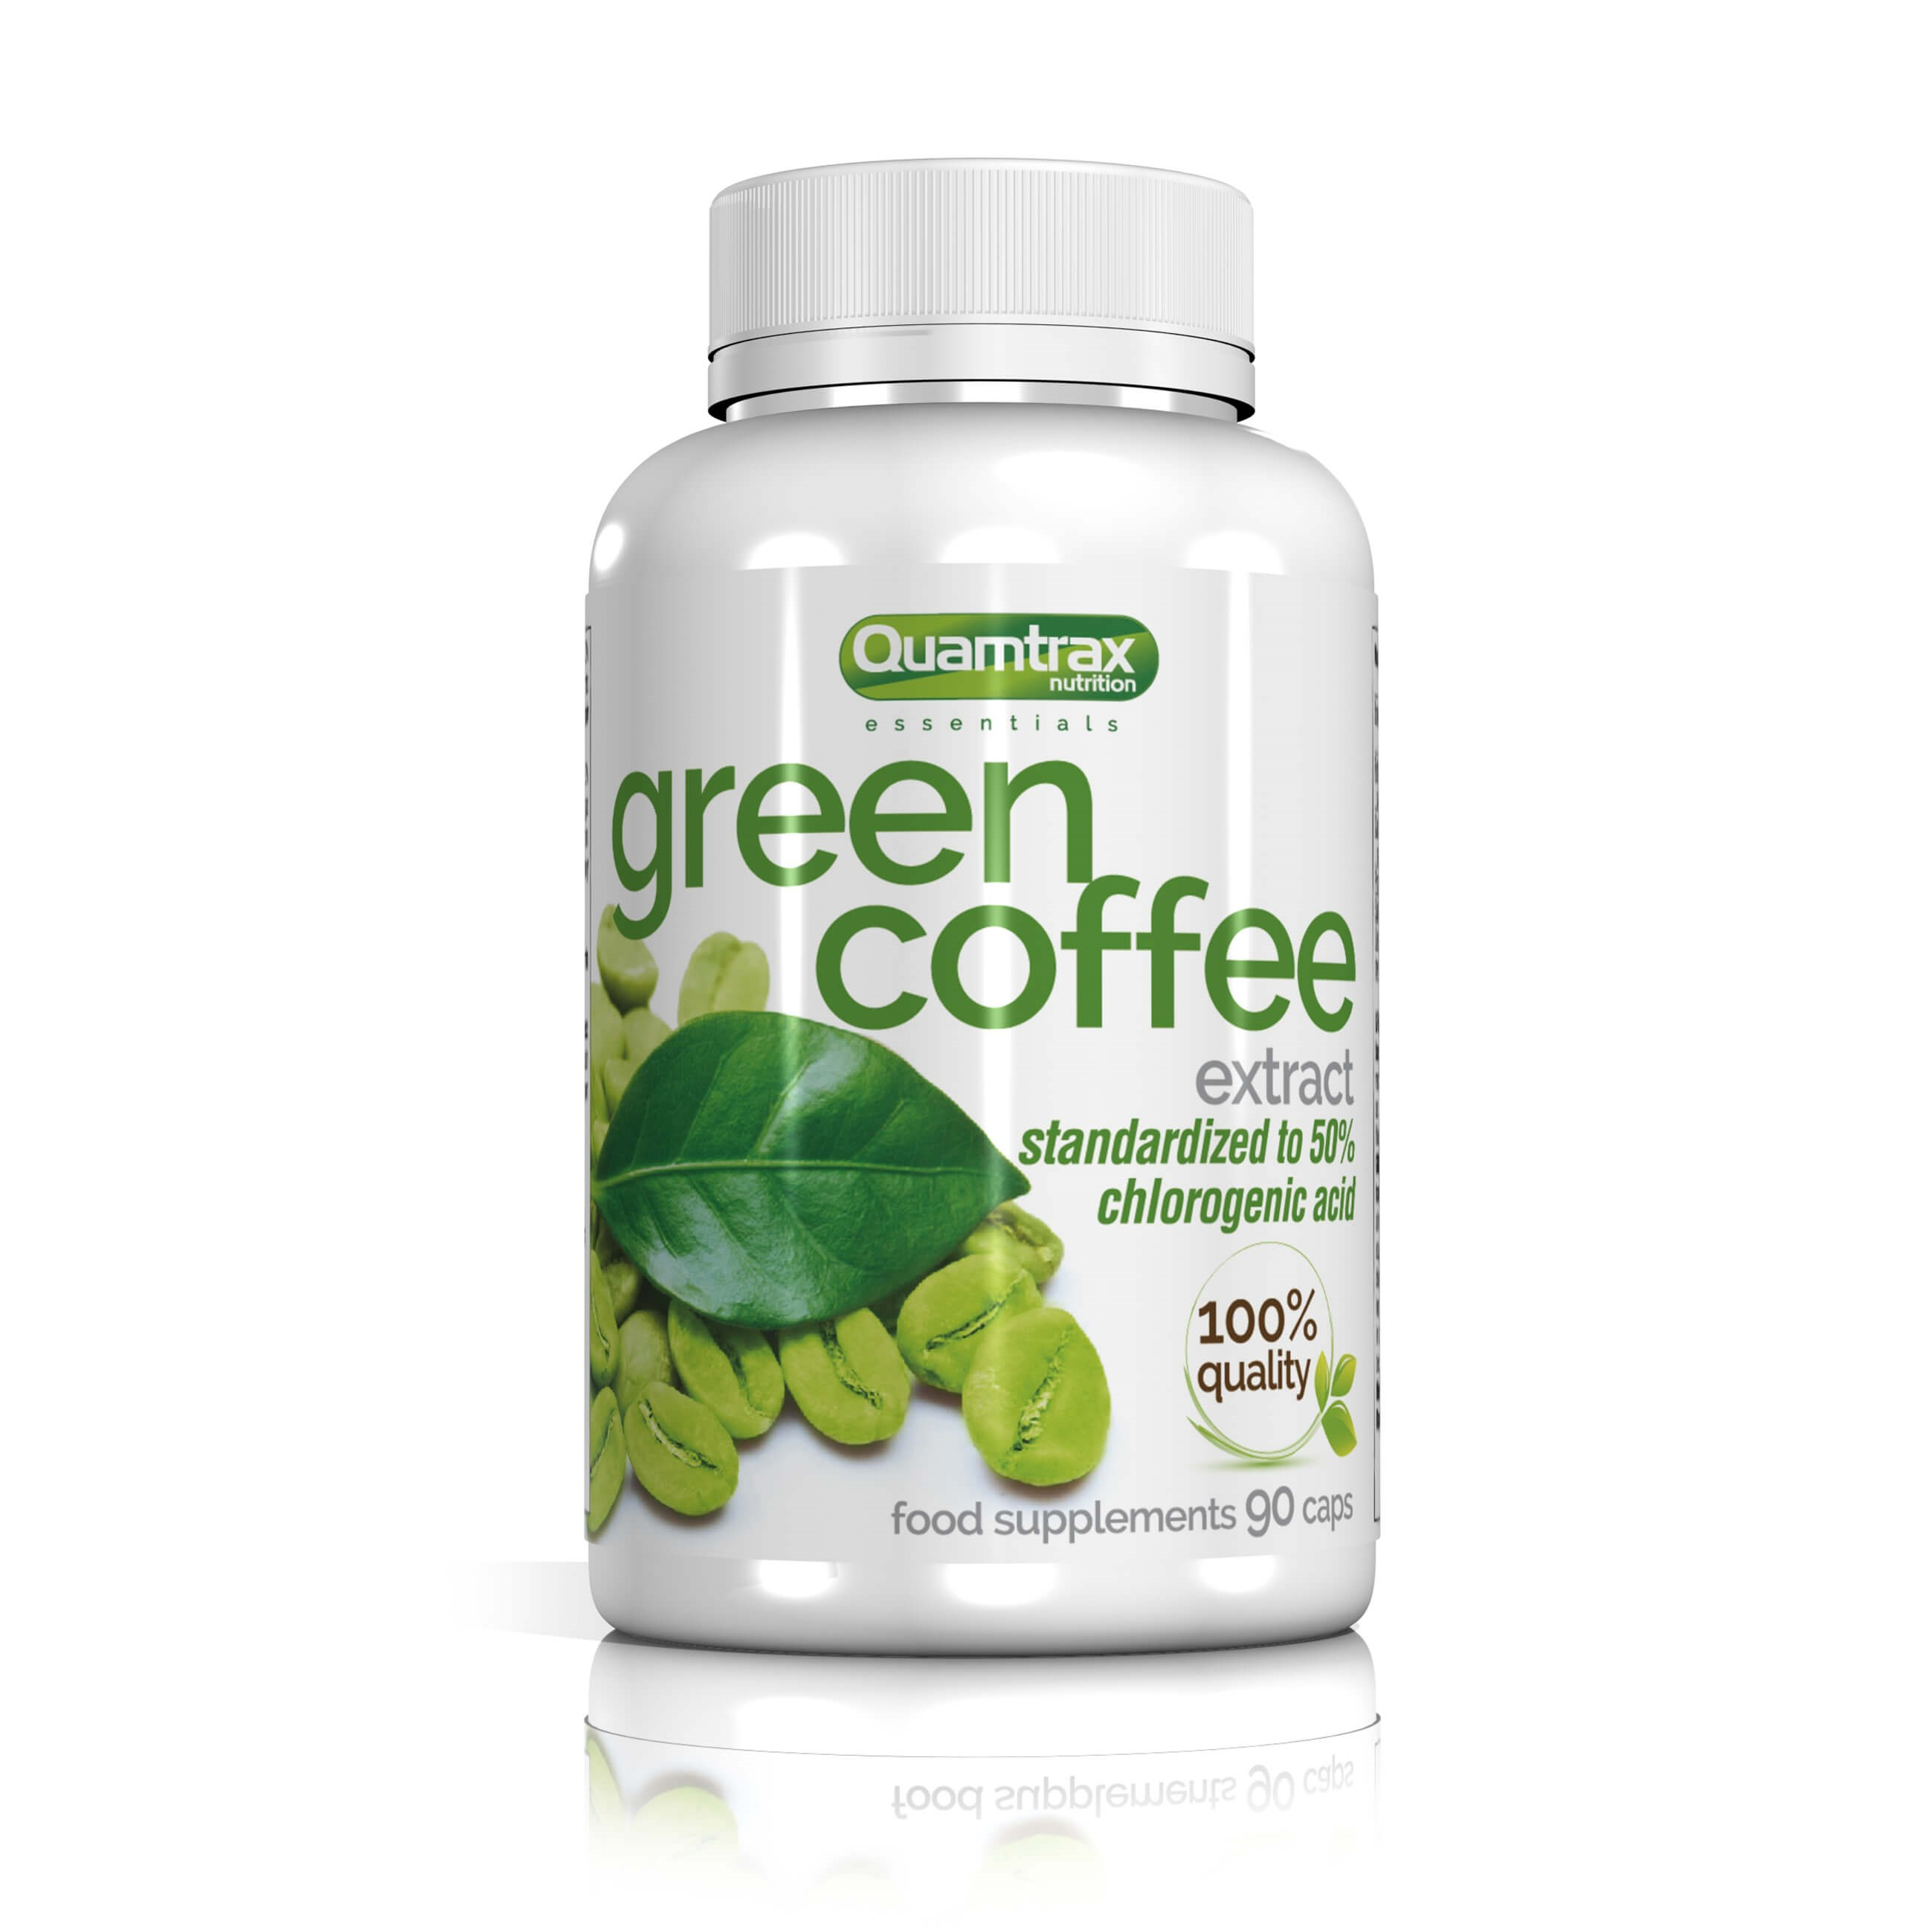 Quamtrax Essentials Green Coffee Extract 90 capsules